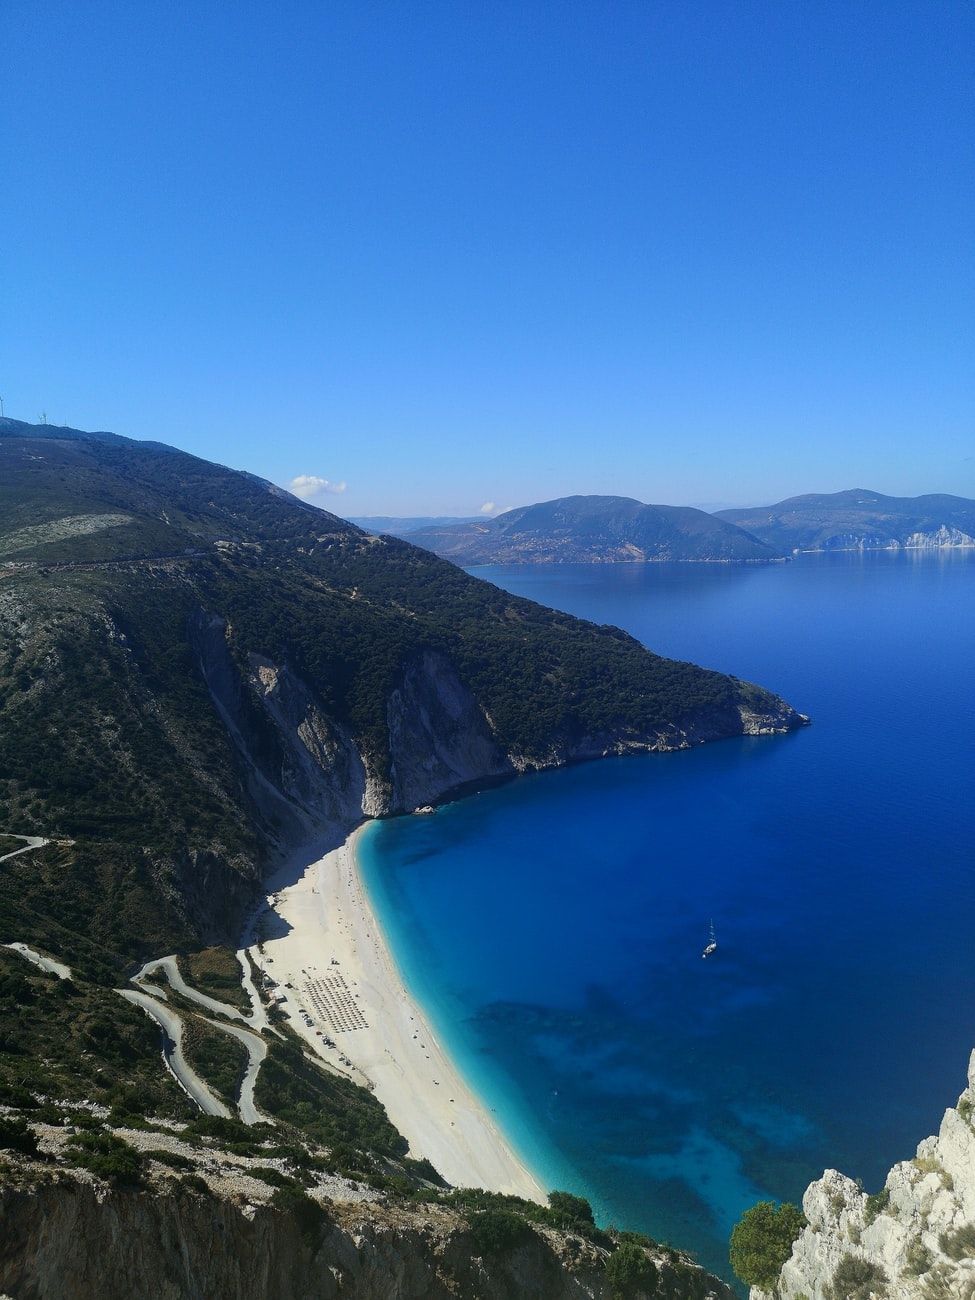 Travel Agency Kefalonia - Private Tours Kefalonia - Kefalonia Excursions - Kefalonia Tours  - Kefalonia Transfers- Taxi Transfers Kefalonia - Bust Transfers Kefalonia - Minivan Transfers Kefalonia - Private Transfers Kefalonia - Wedding Transfers Kefalonia